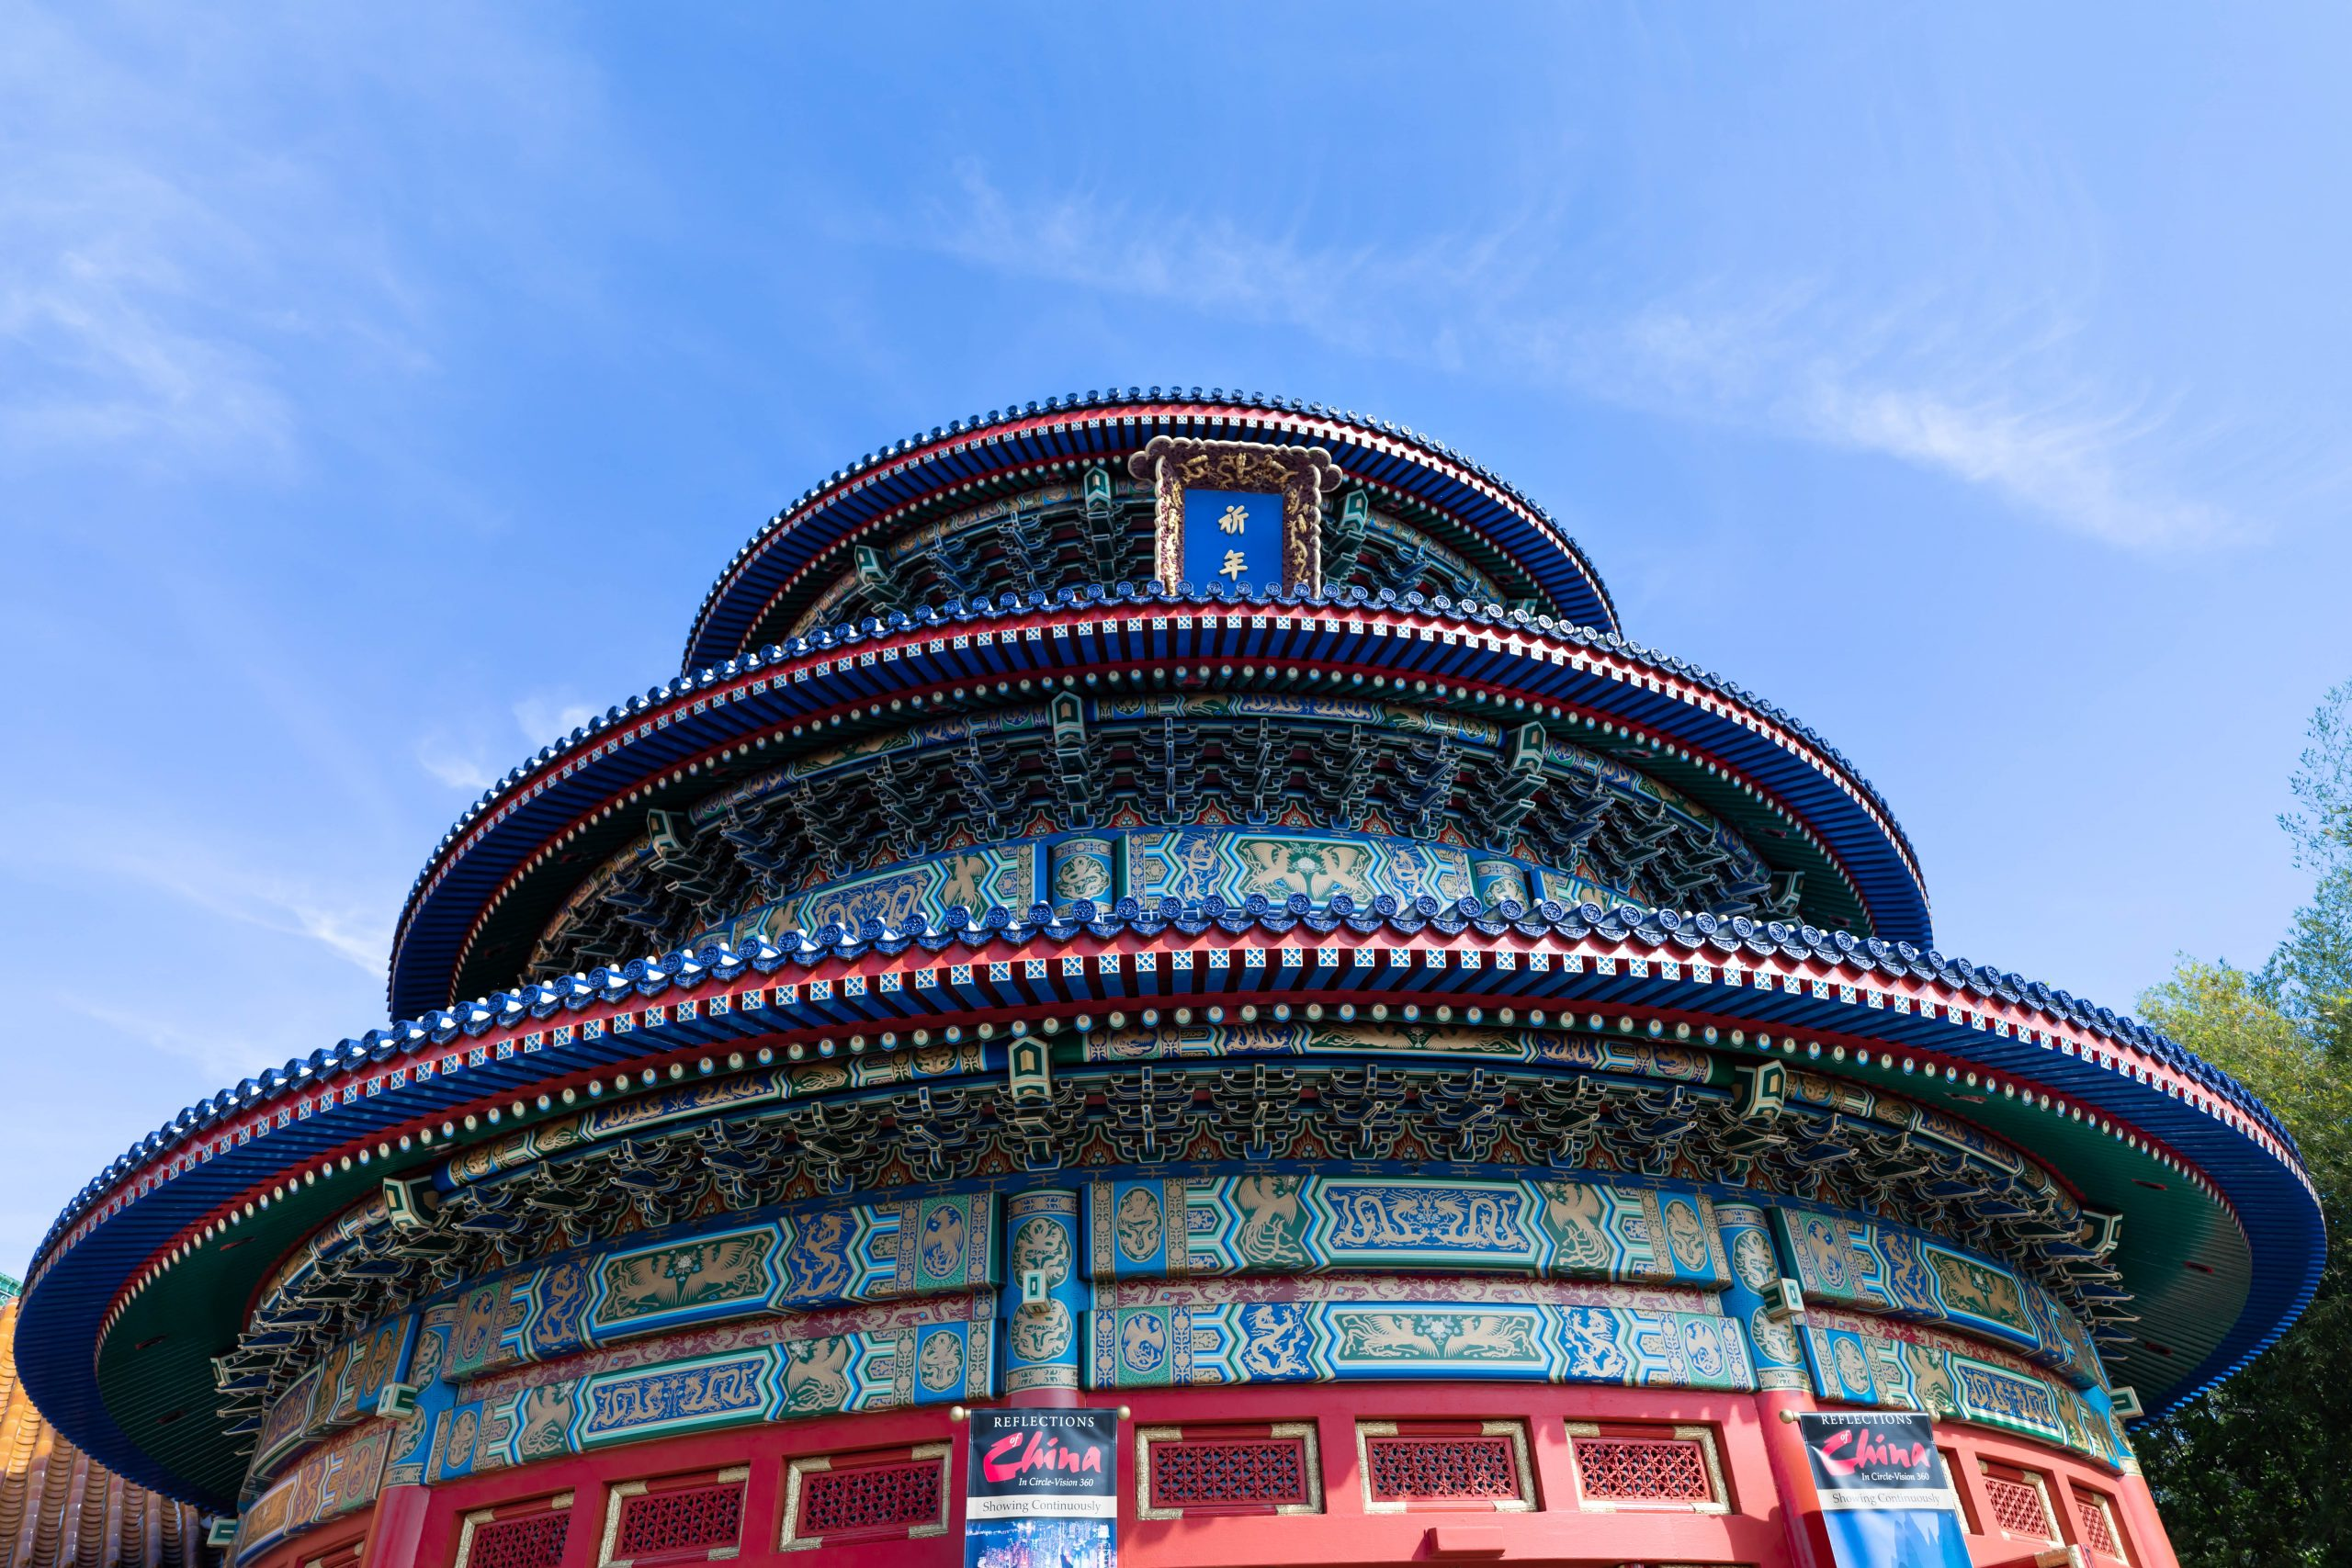 Reflections of China Pavilion at Epcot Walt Disney World by Luxury Travel Writer and Photographer Annie Fairfax